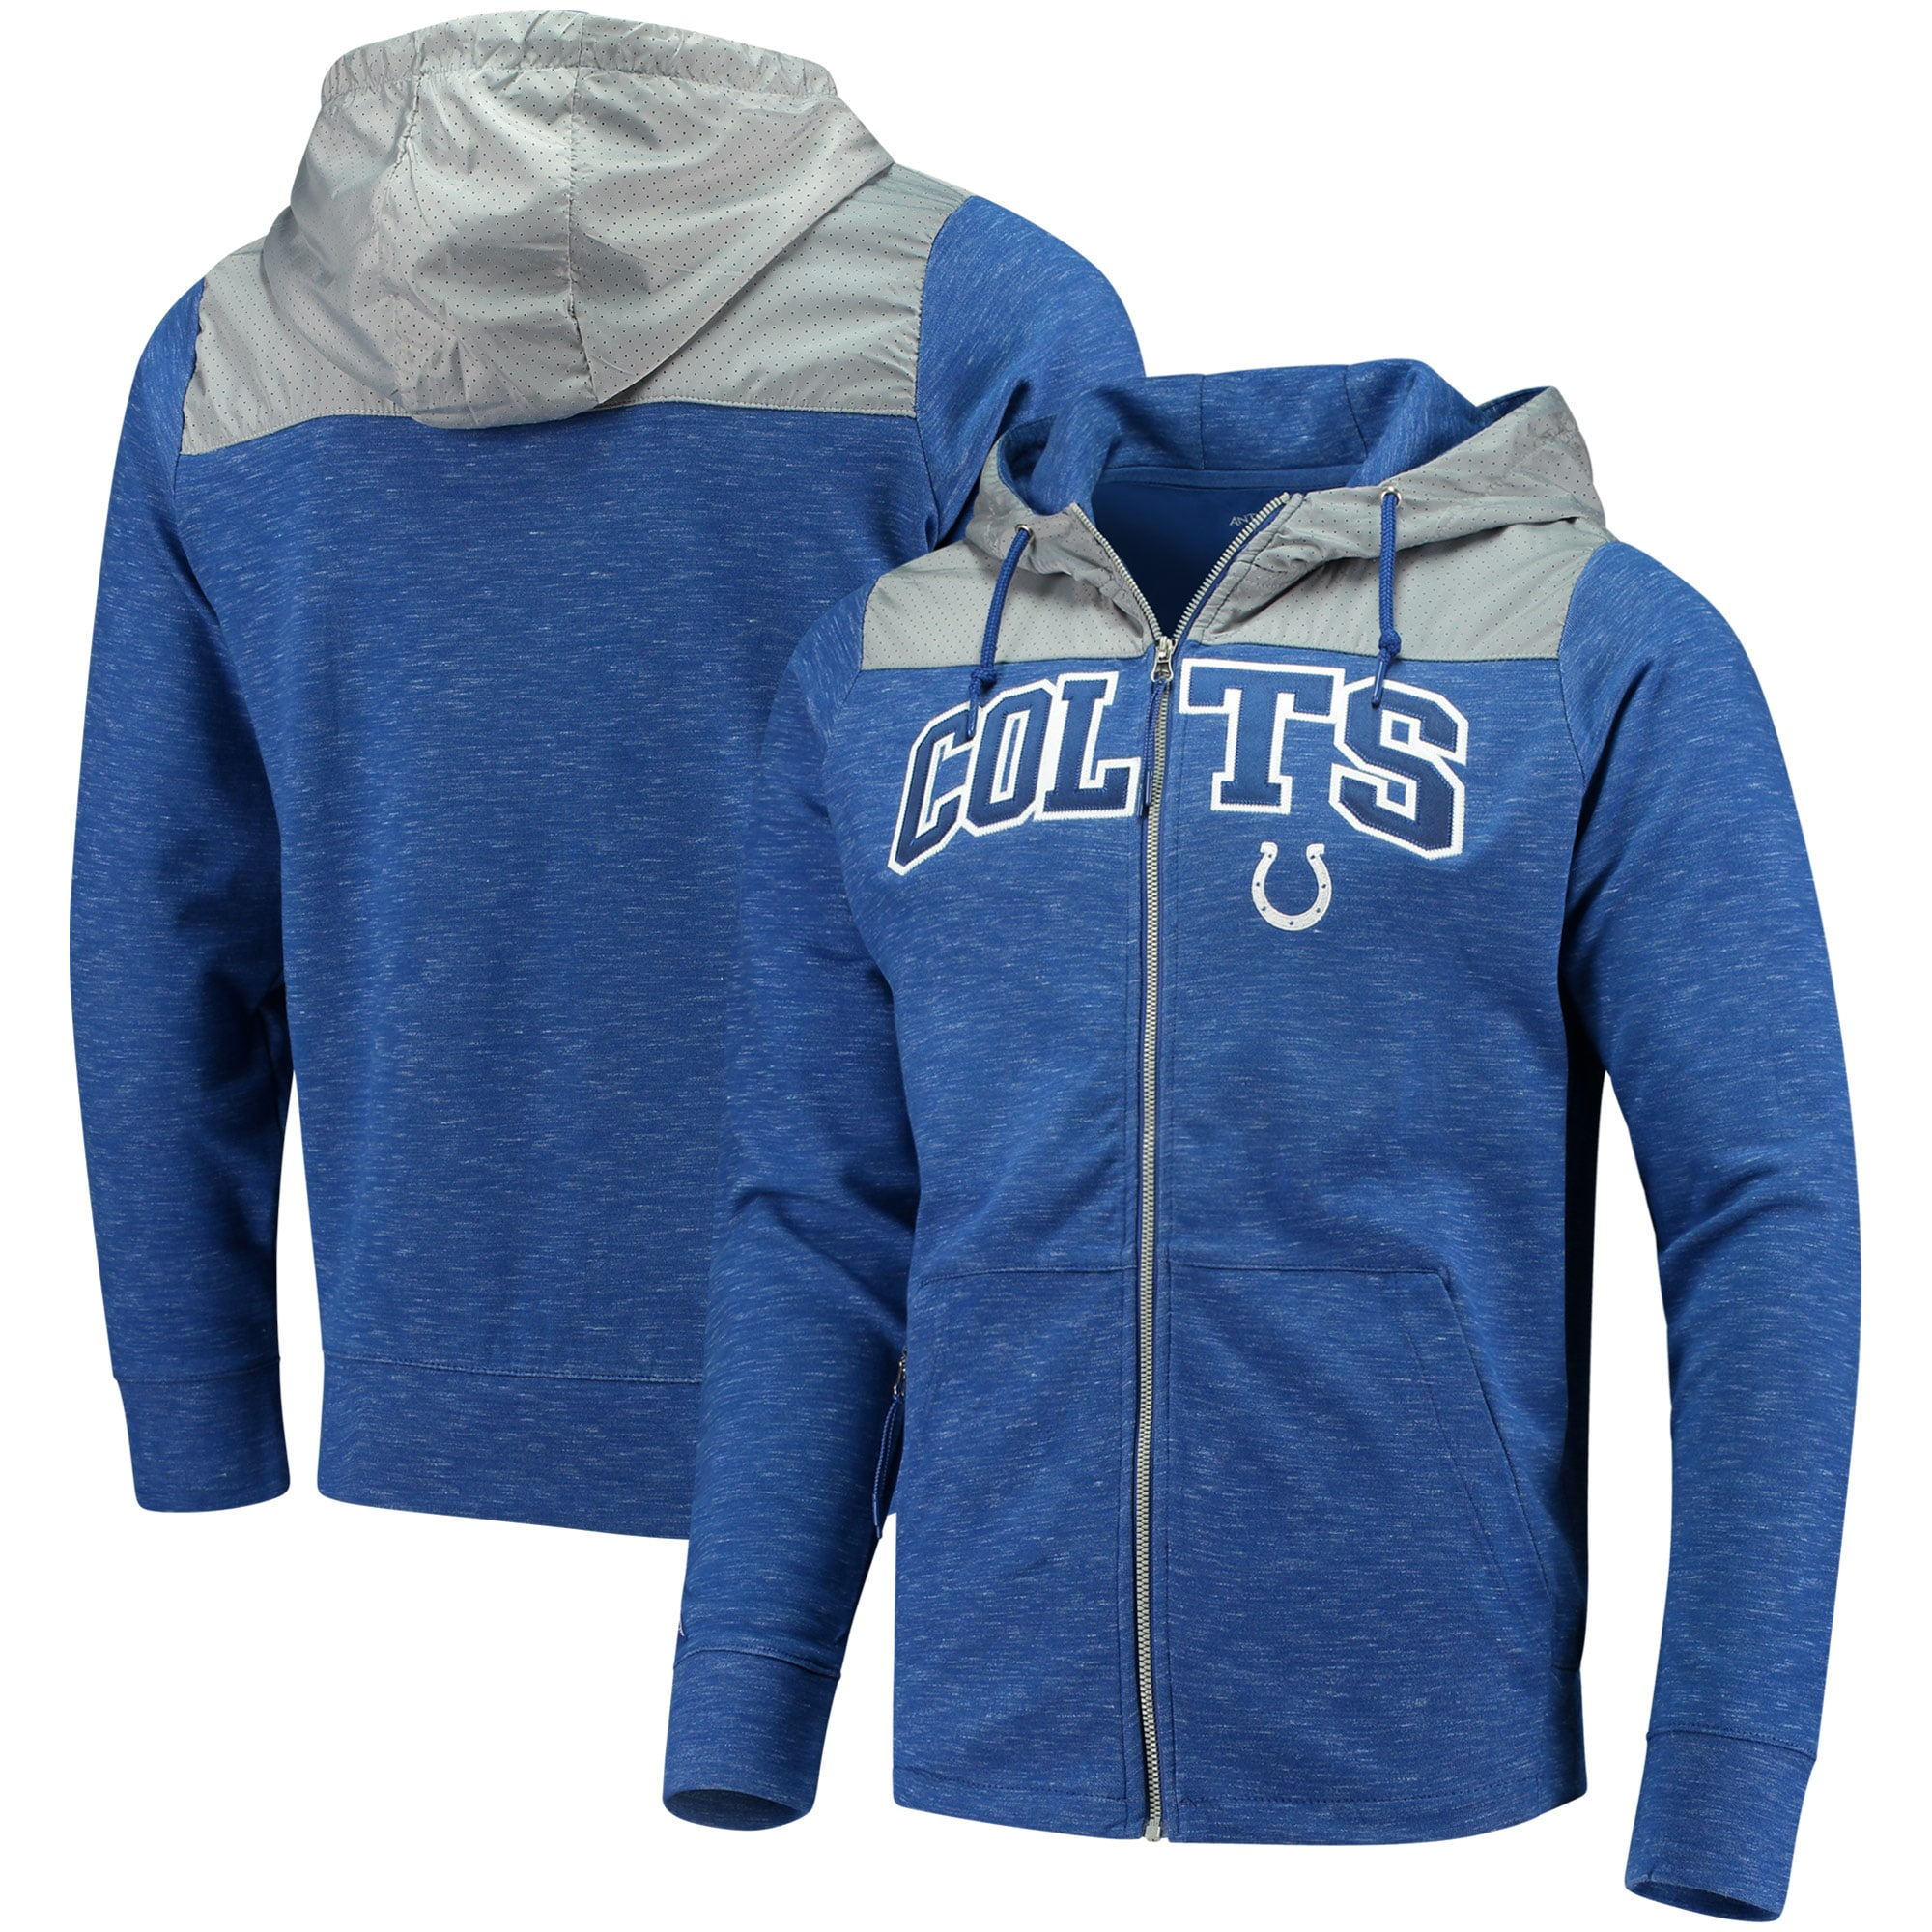 Indianapolis Colts Antigua Exertion Full-Zip Hoodie - Royal/Silver